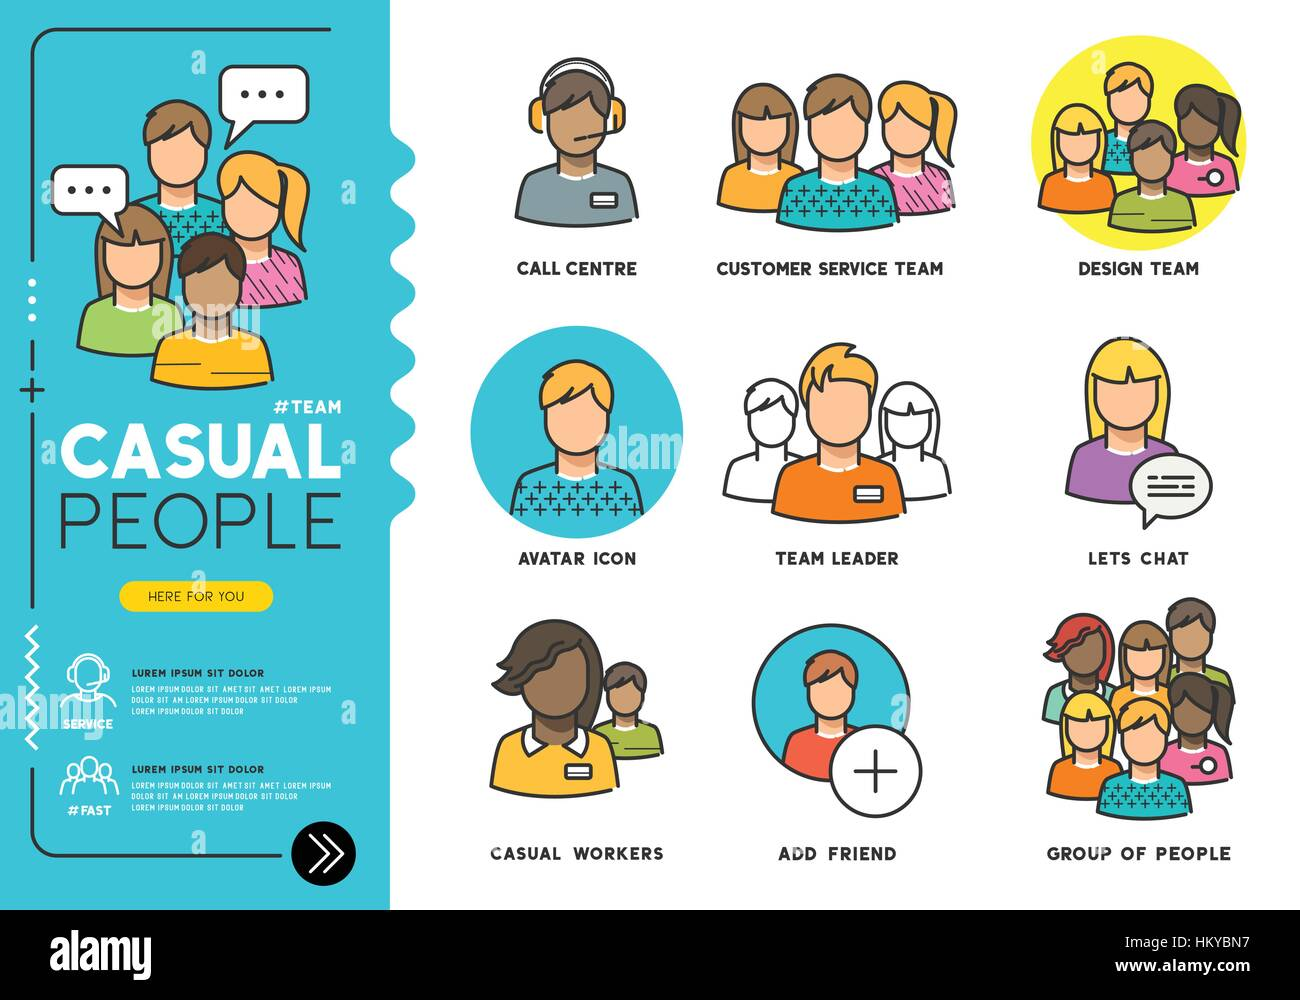 Casual People. Profiles of everyday men and women in various job roles in everyday clothes. Vector illustration - Stock Image